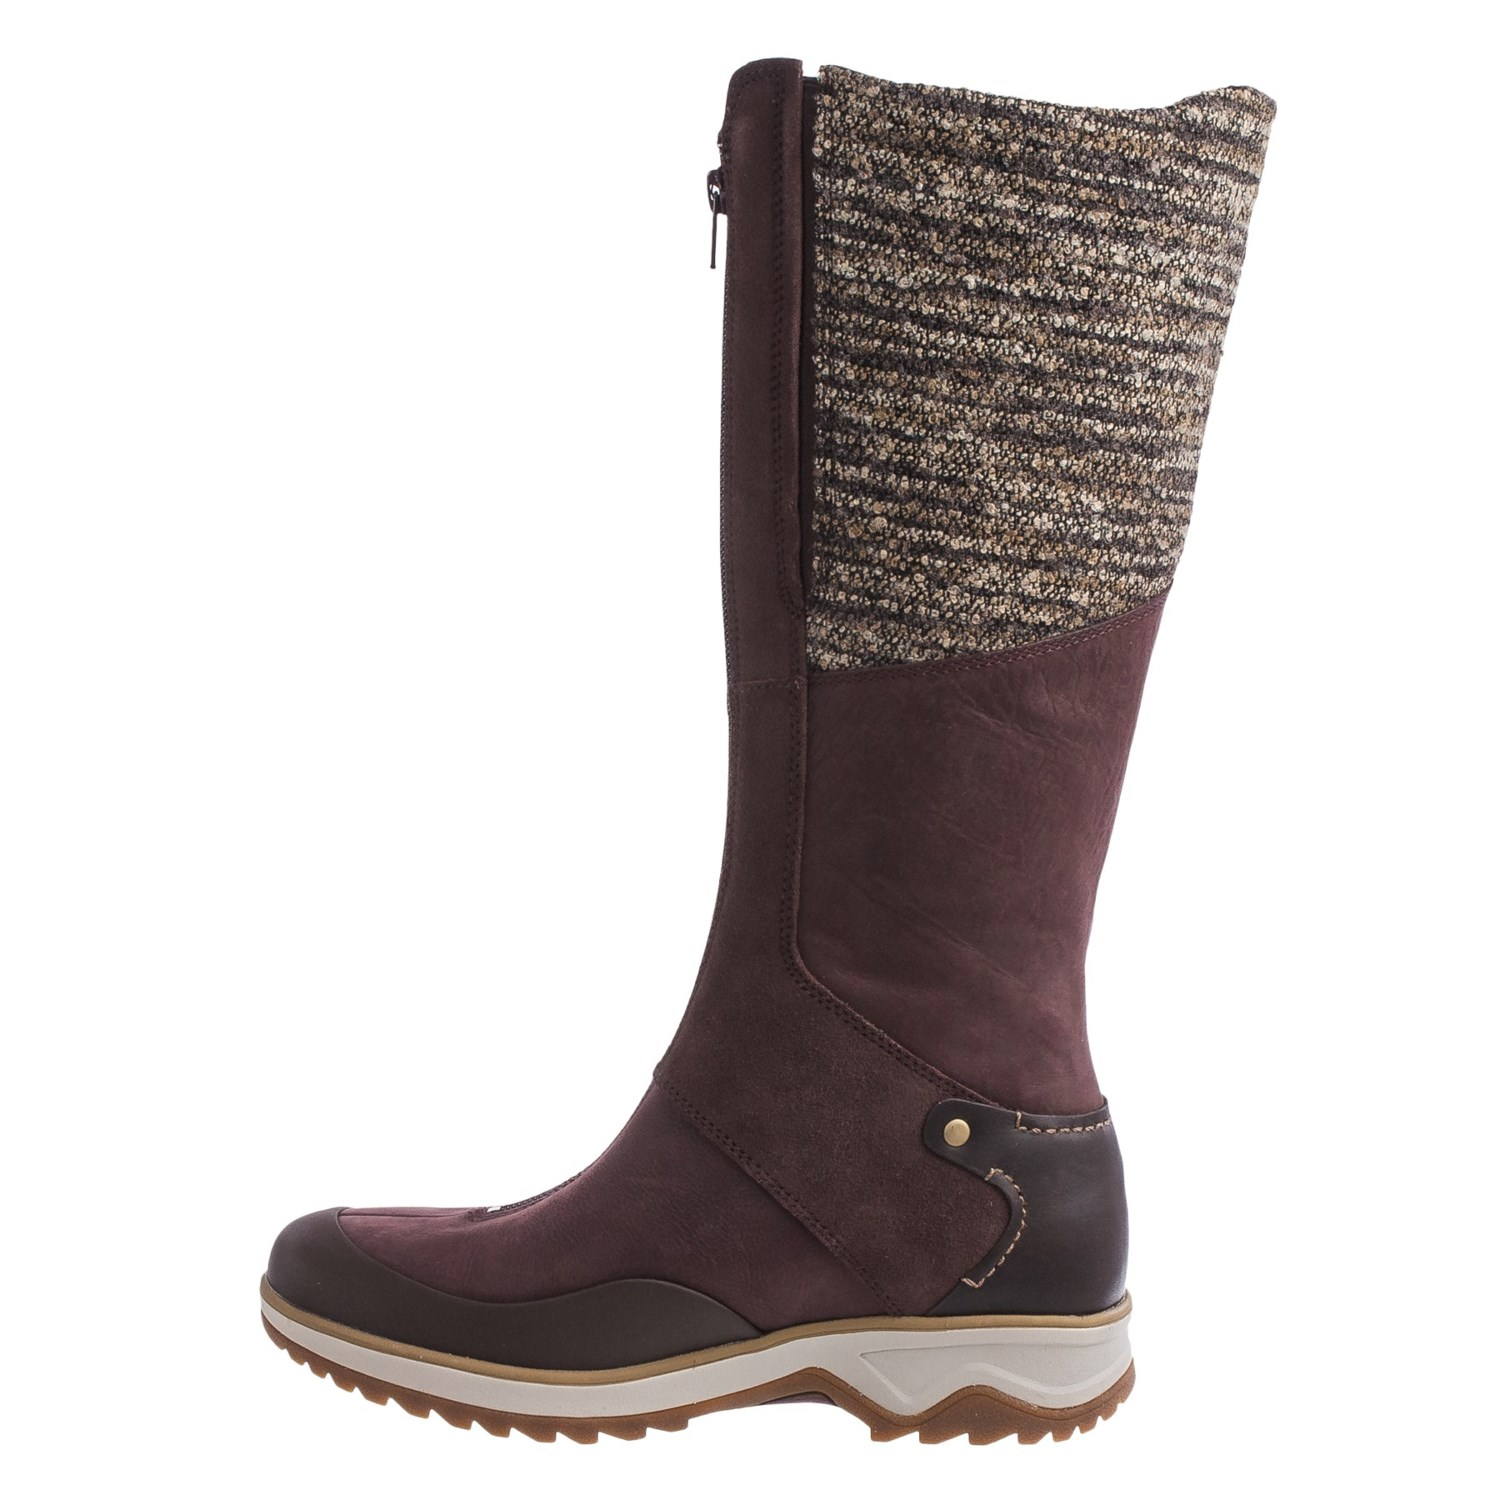 Merrell Eventyr Cuff Leather Boots (For Women) - Save 65%